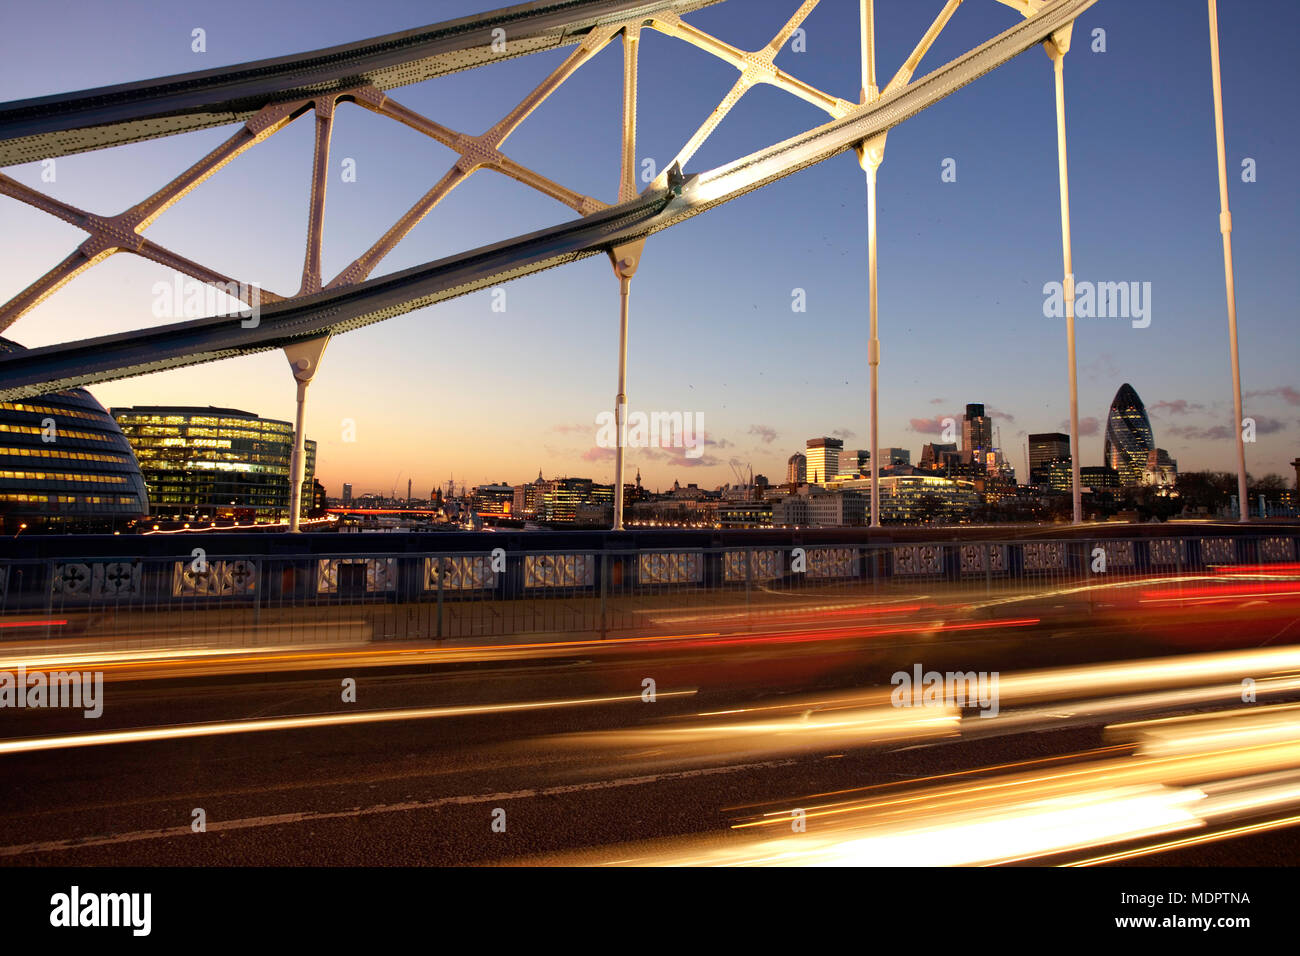 London, UK; view of the City from Tower Bridge. Stock Photo